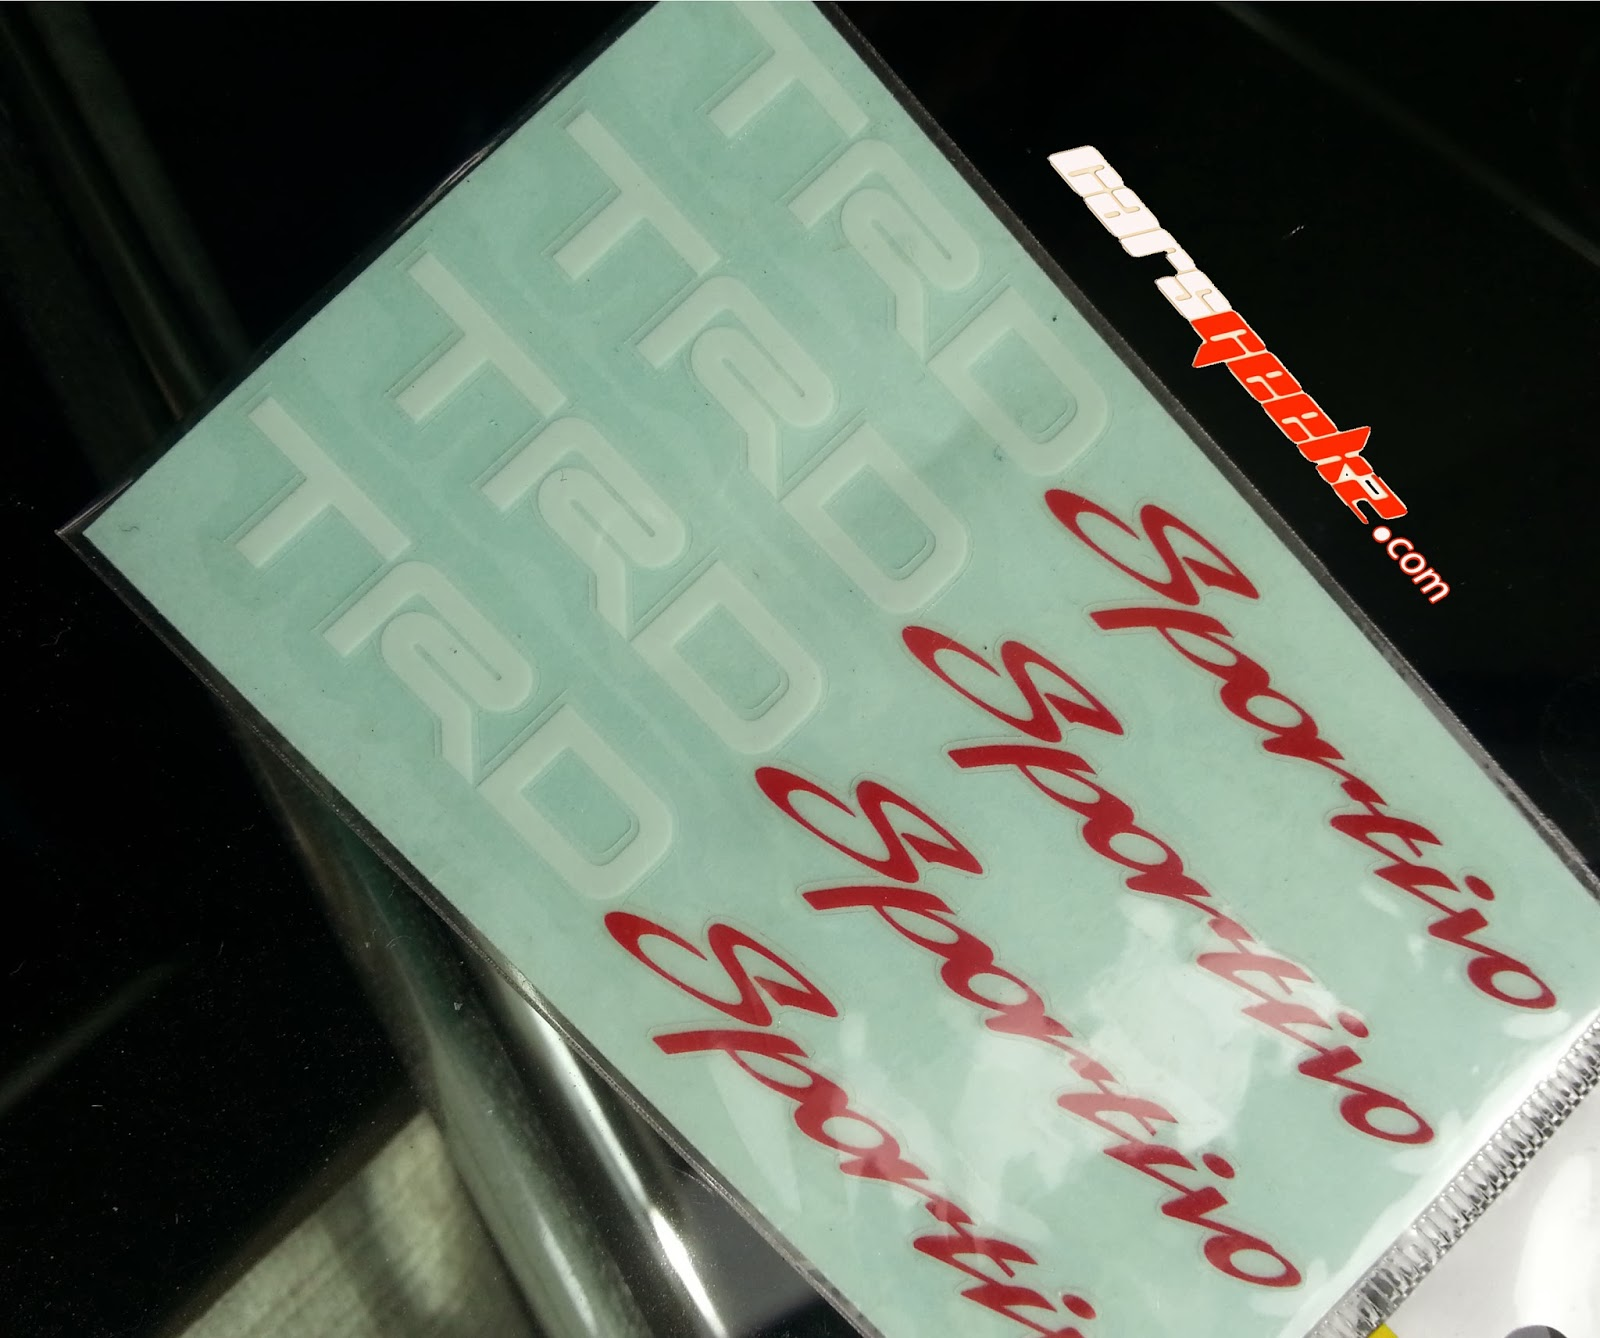 TRD Sportivo red and white sticker